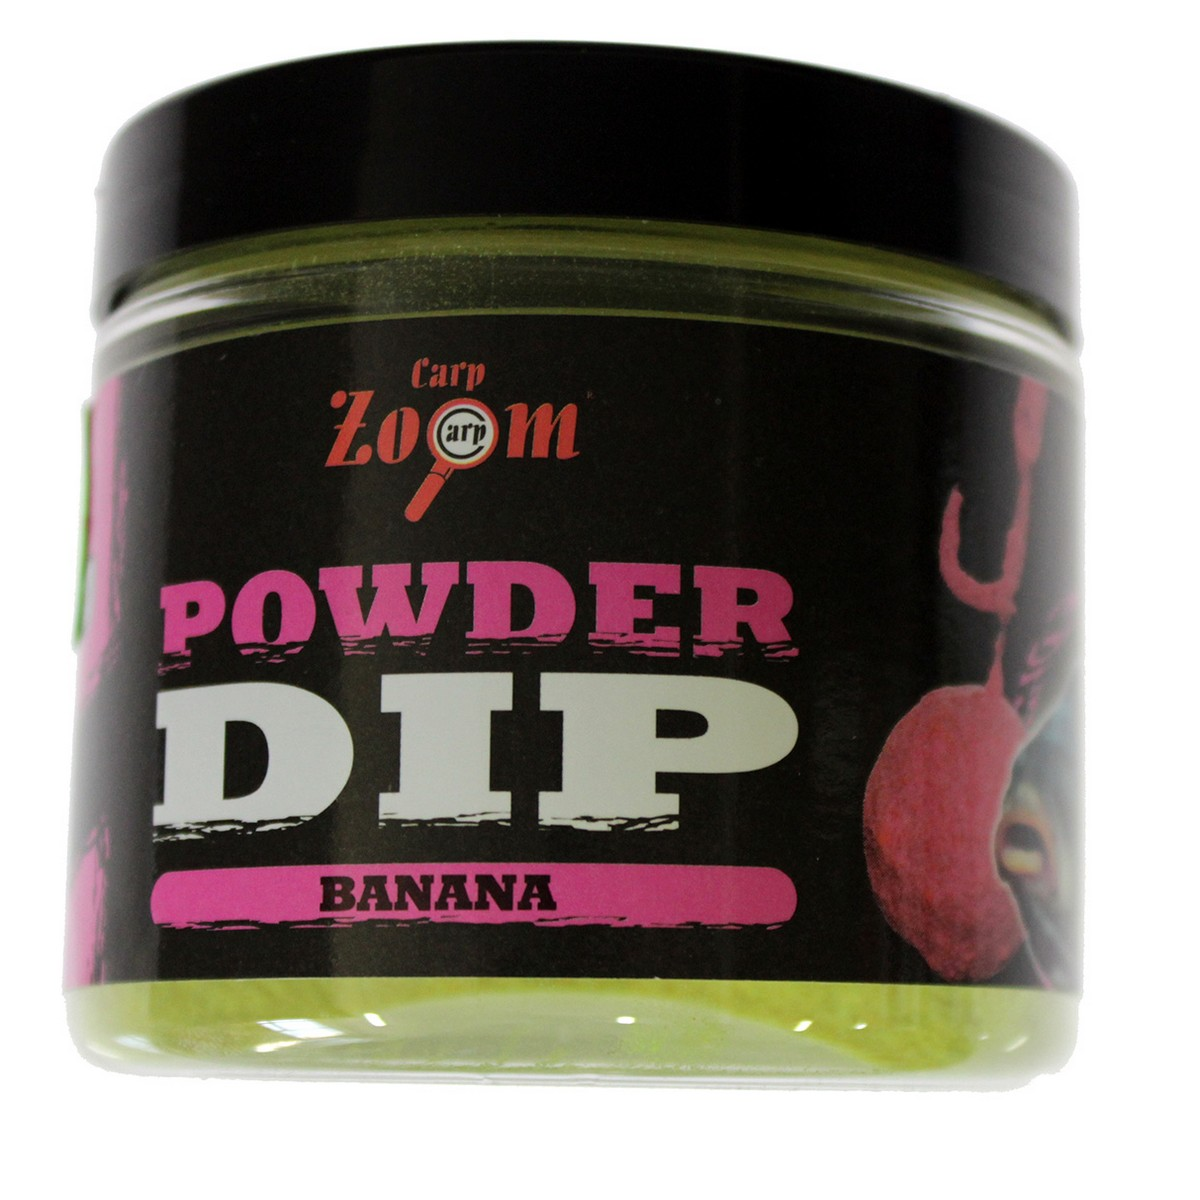 Carp Zoom Powder Dip, banana